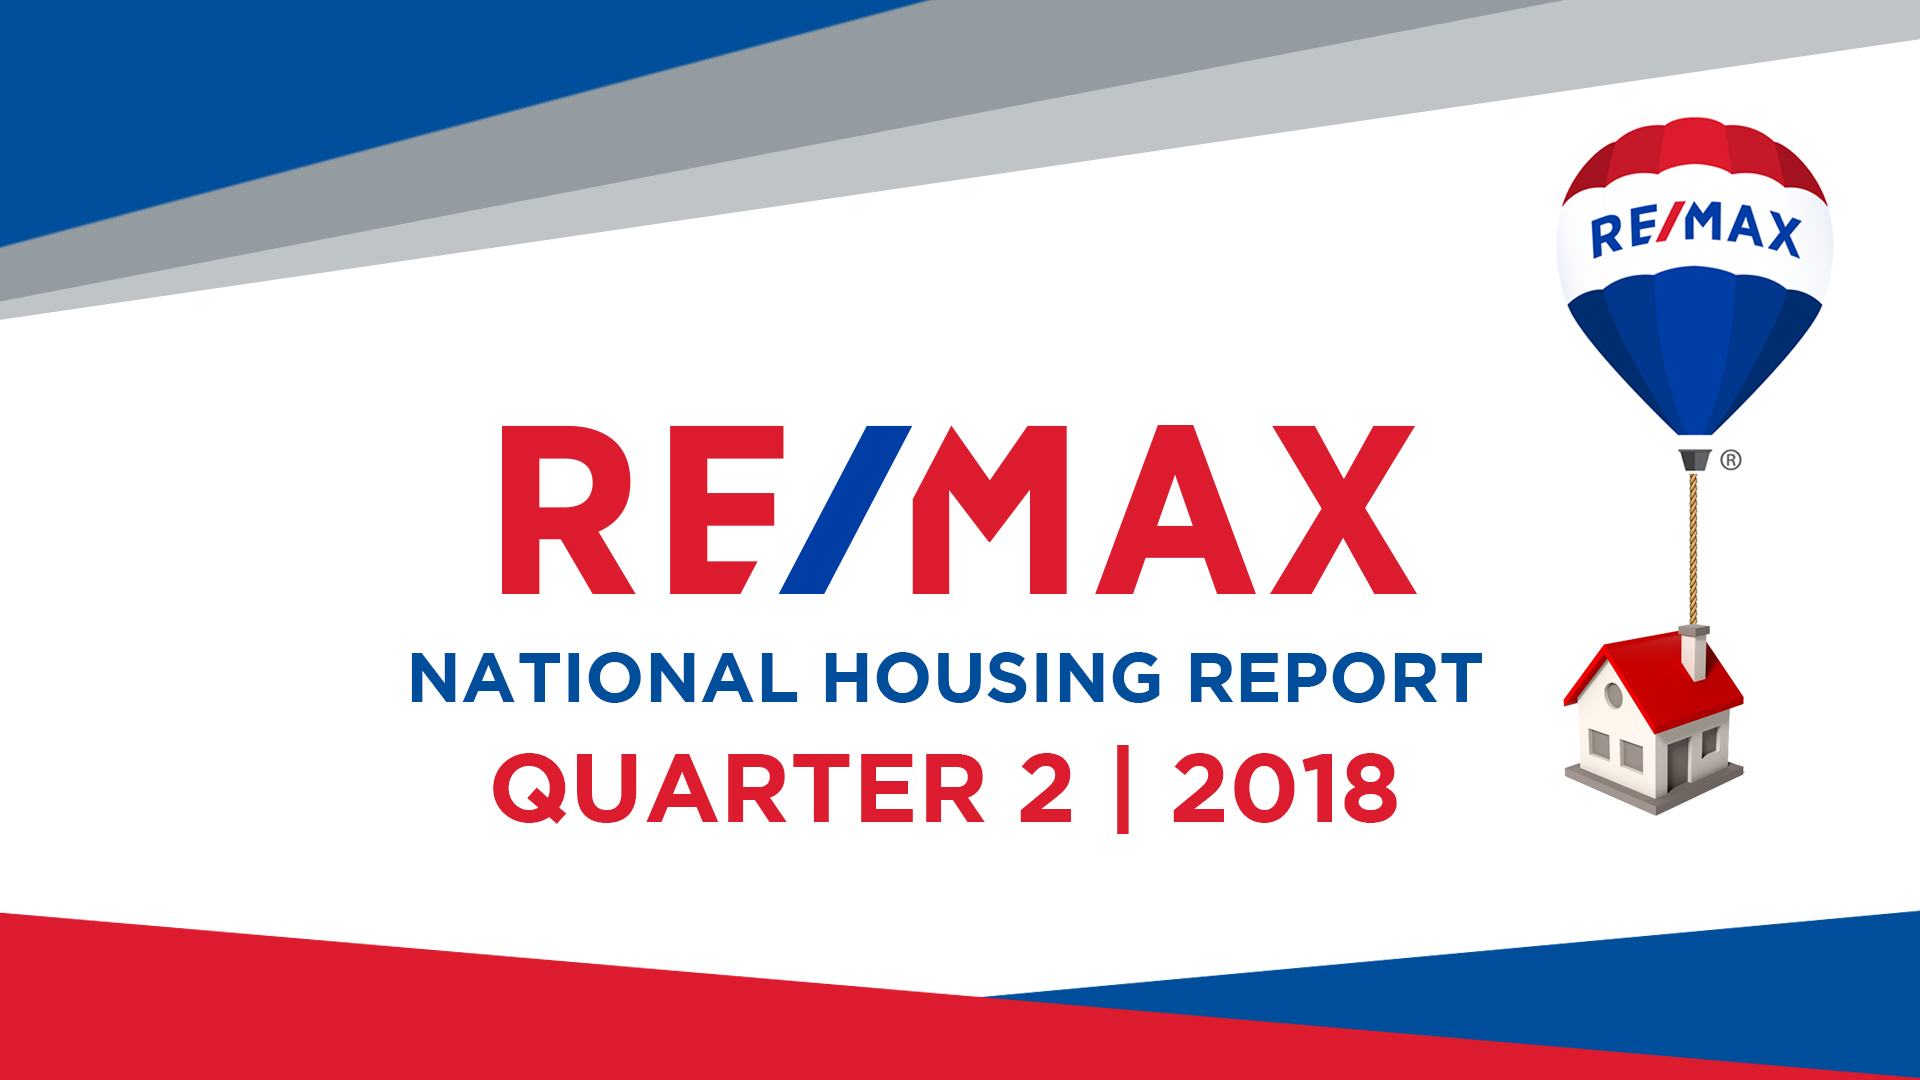 RE/MAX NATIONAL HOUSING REPORT Q2 2018